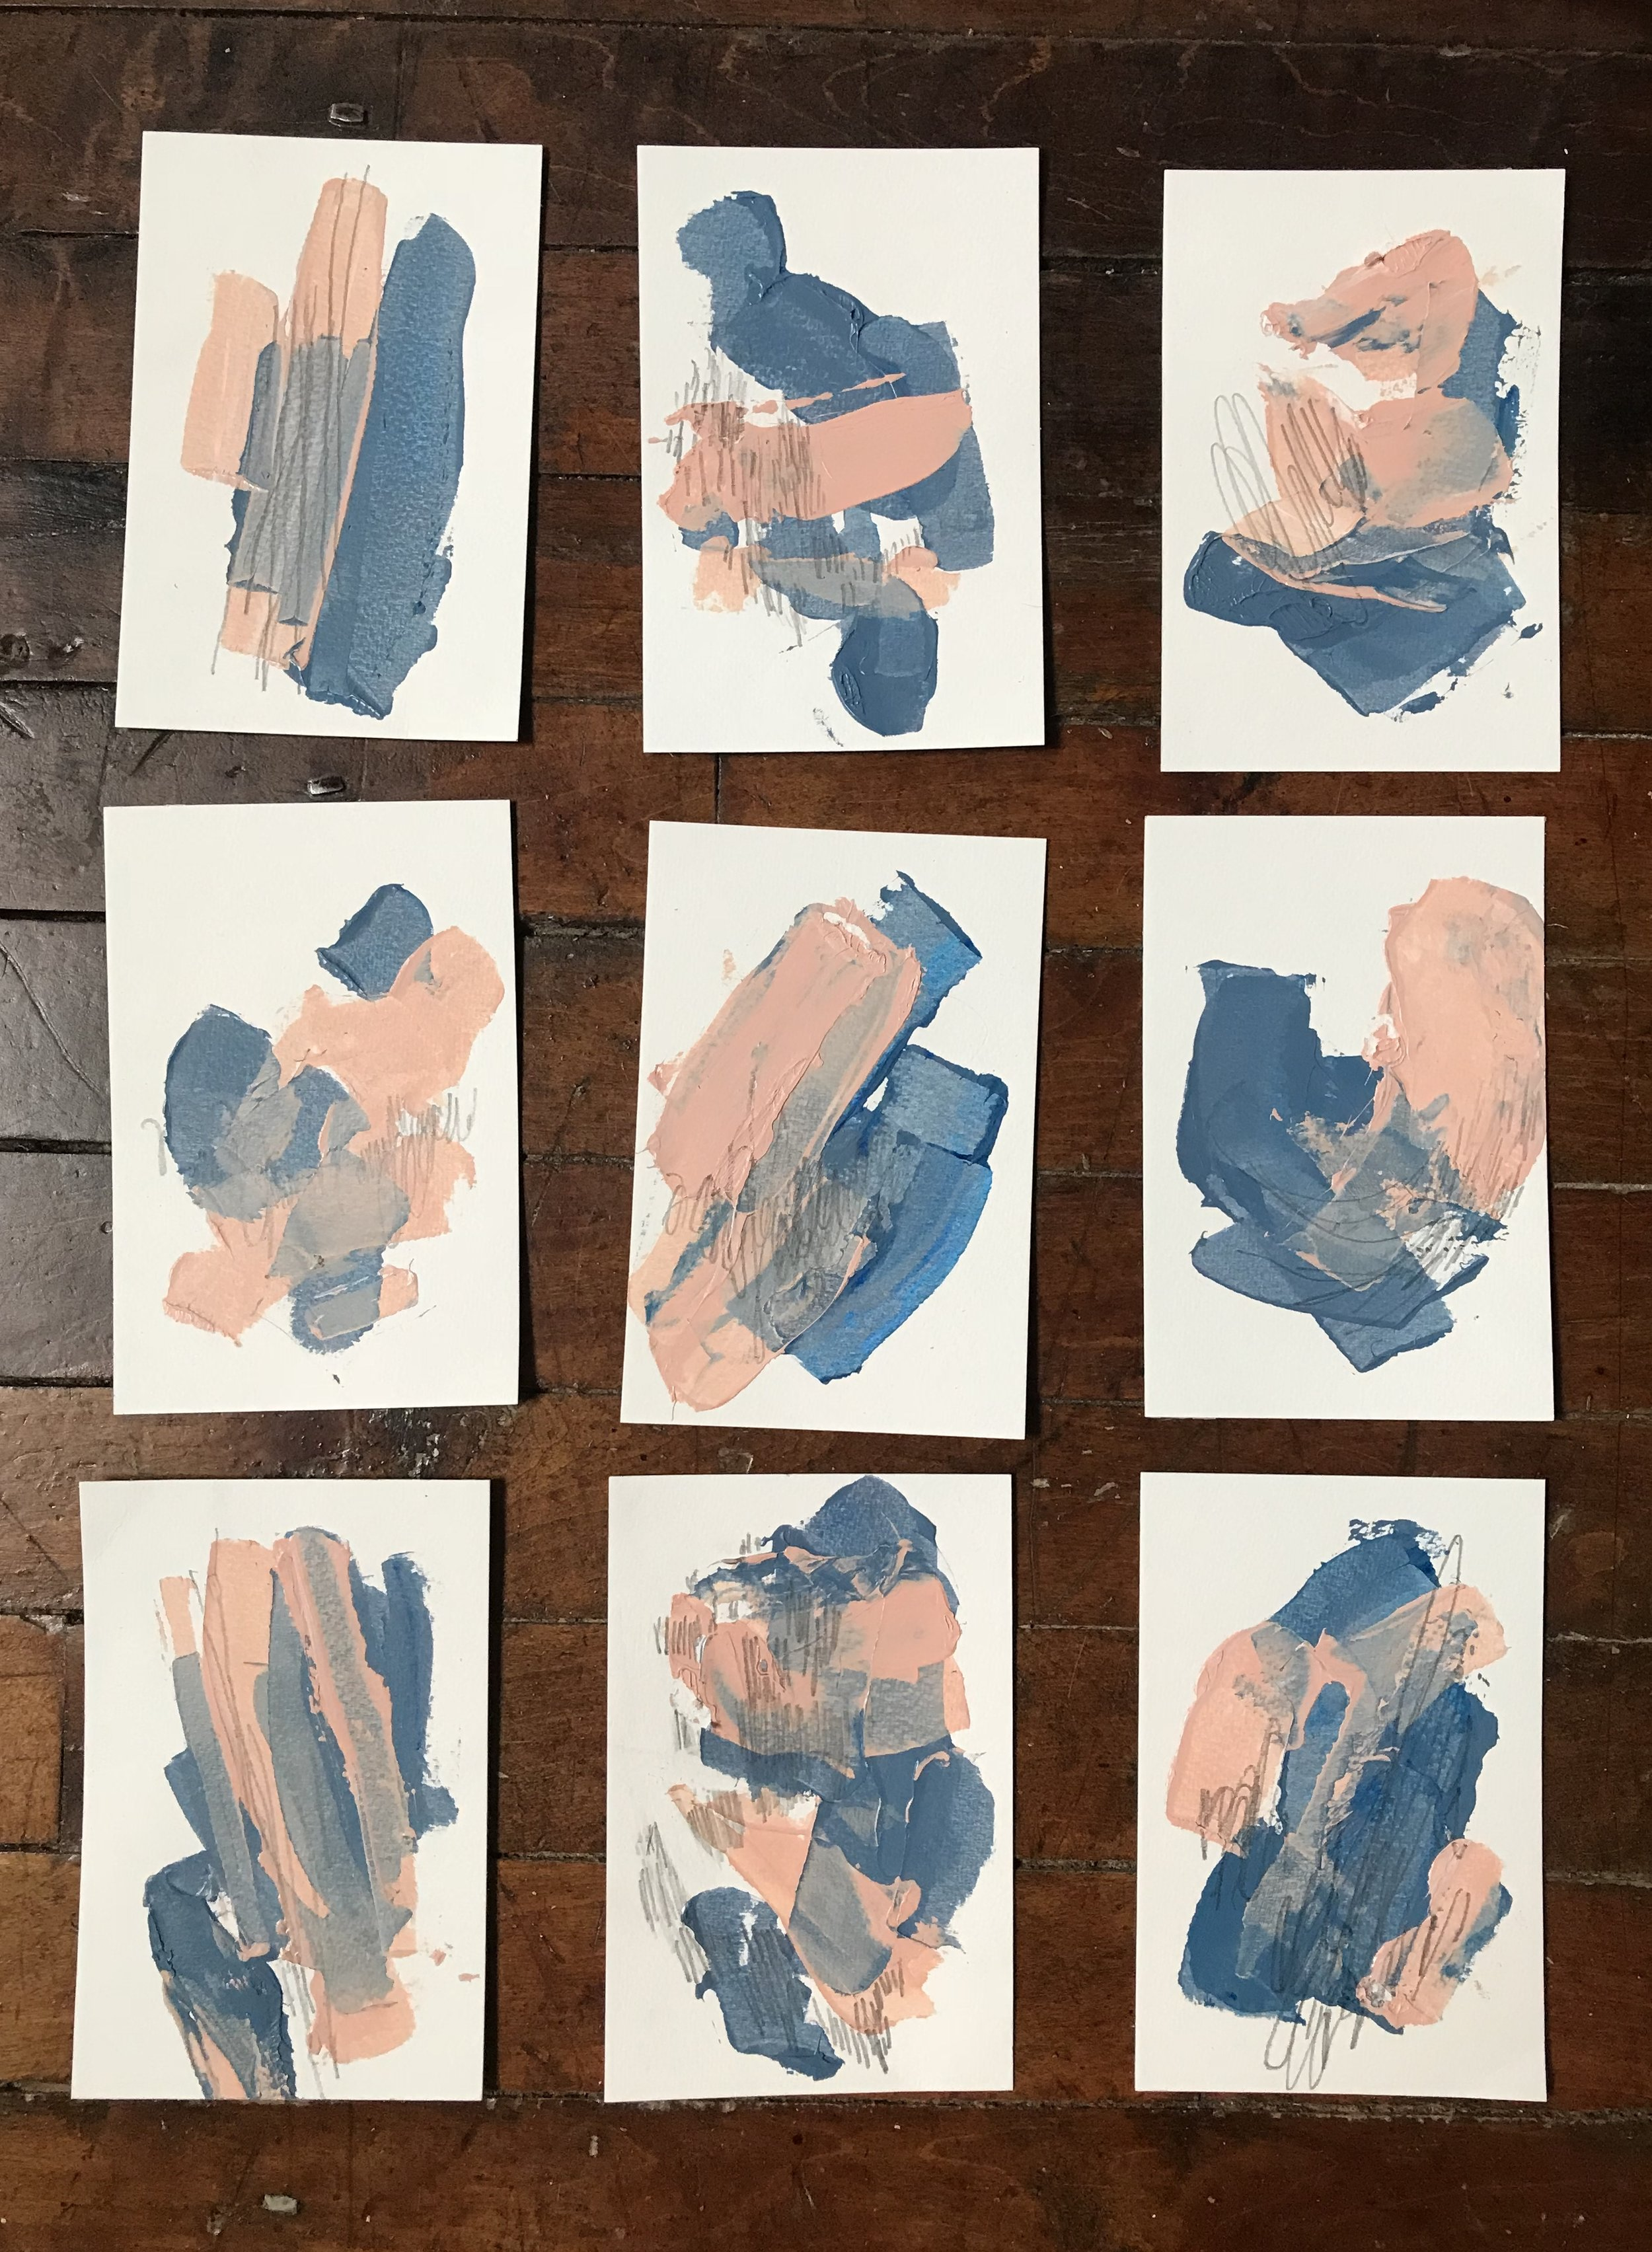 """Tart #2-4 #6, acrylic + graphite on paper, 4""""x6"""" each, 2018 / contact Katie for pricing"""